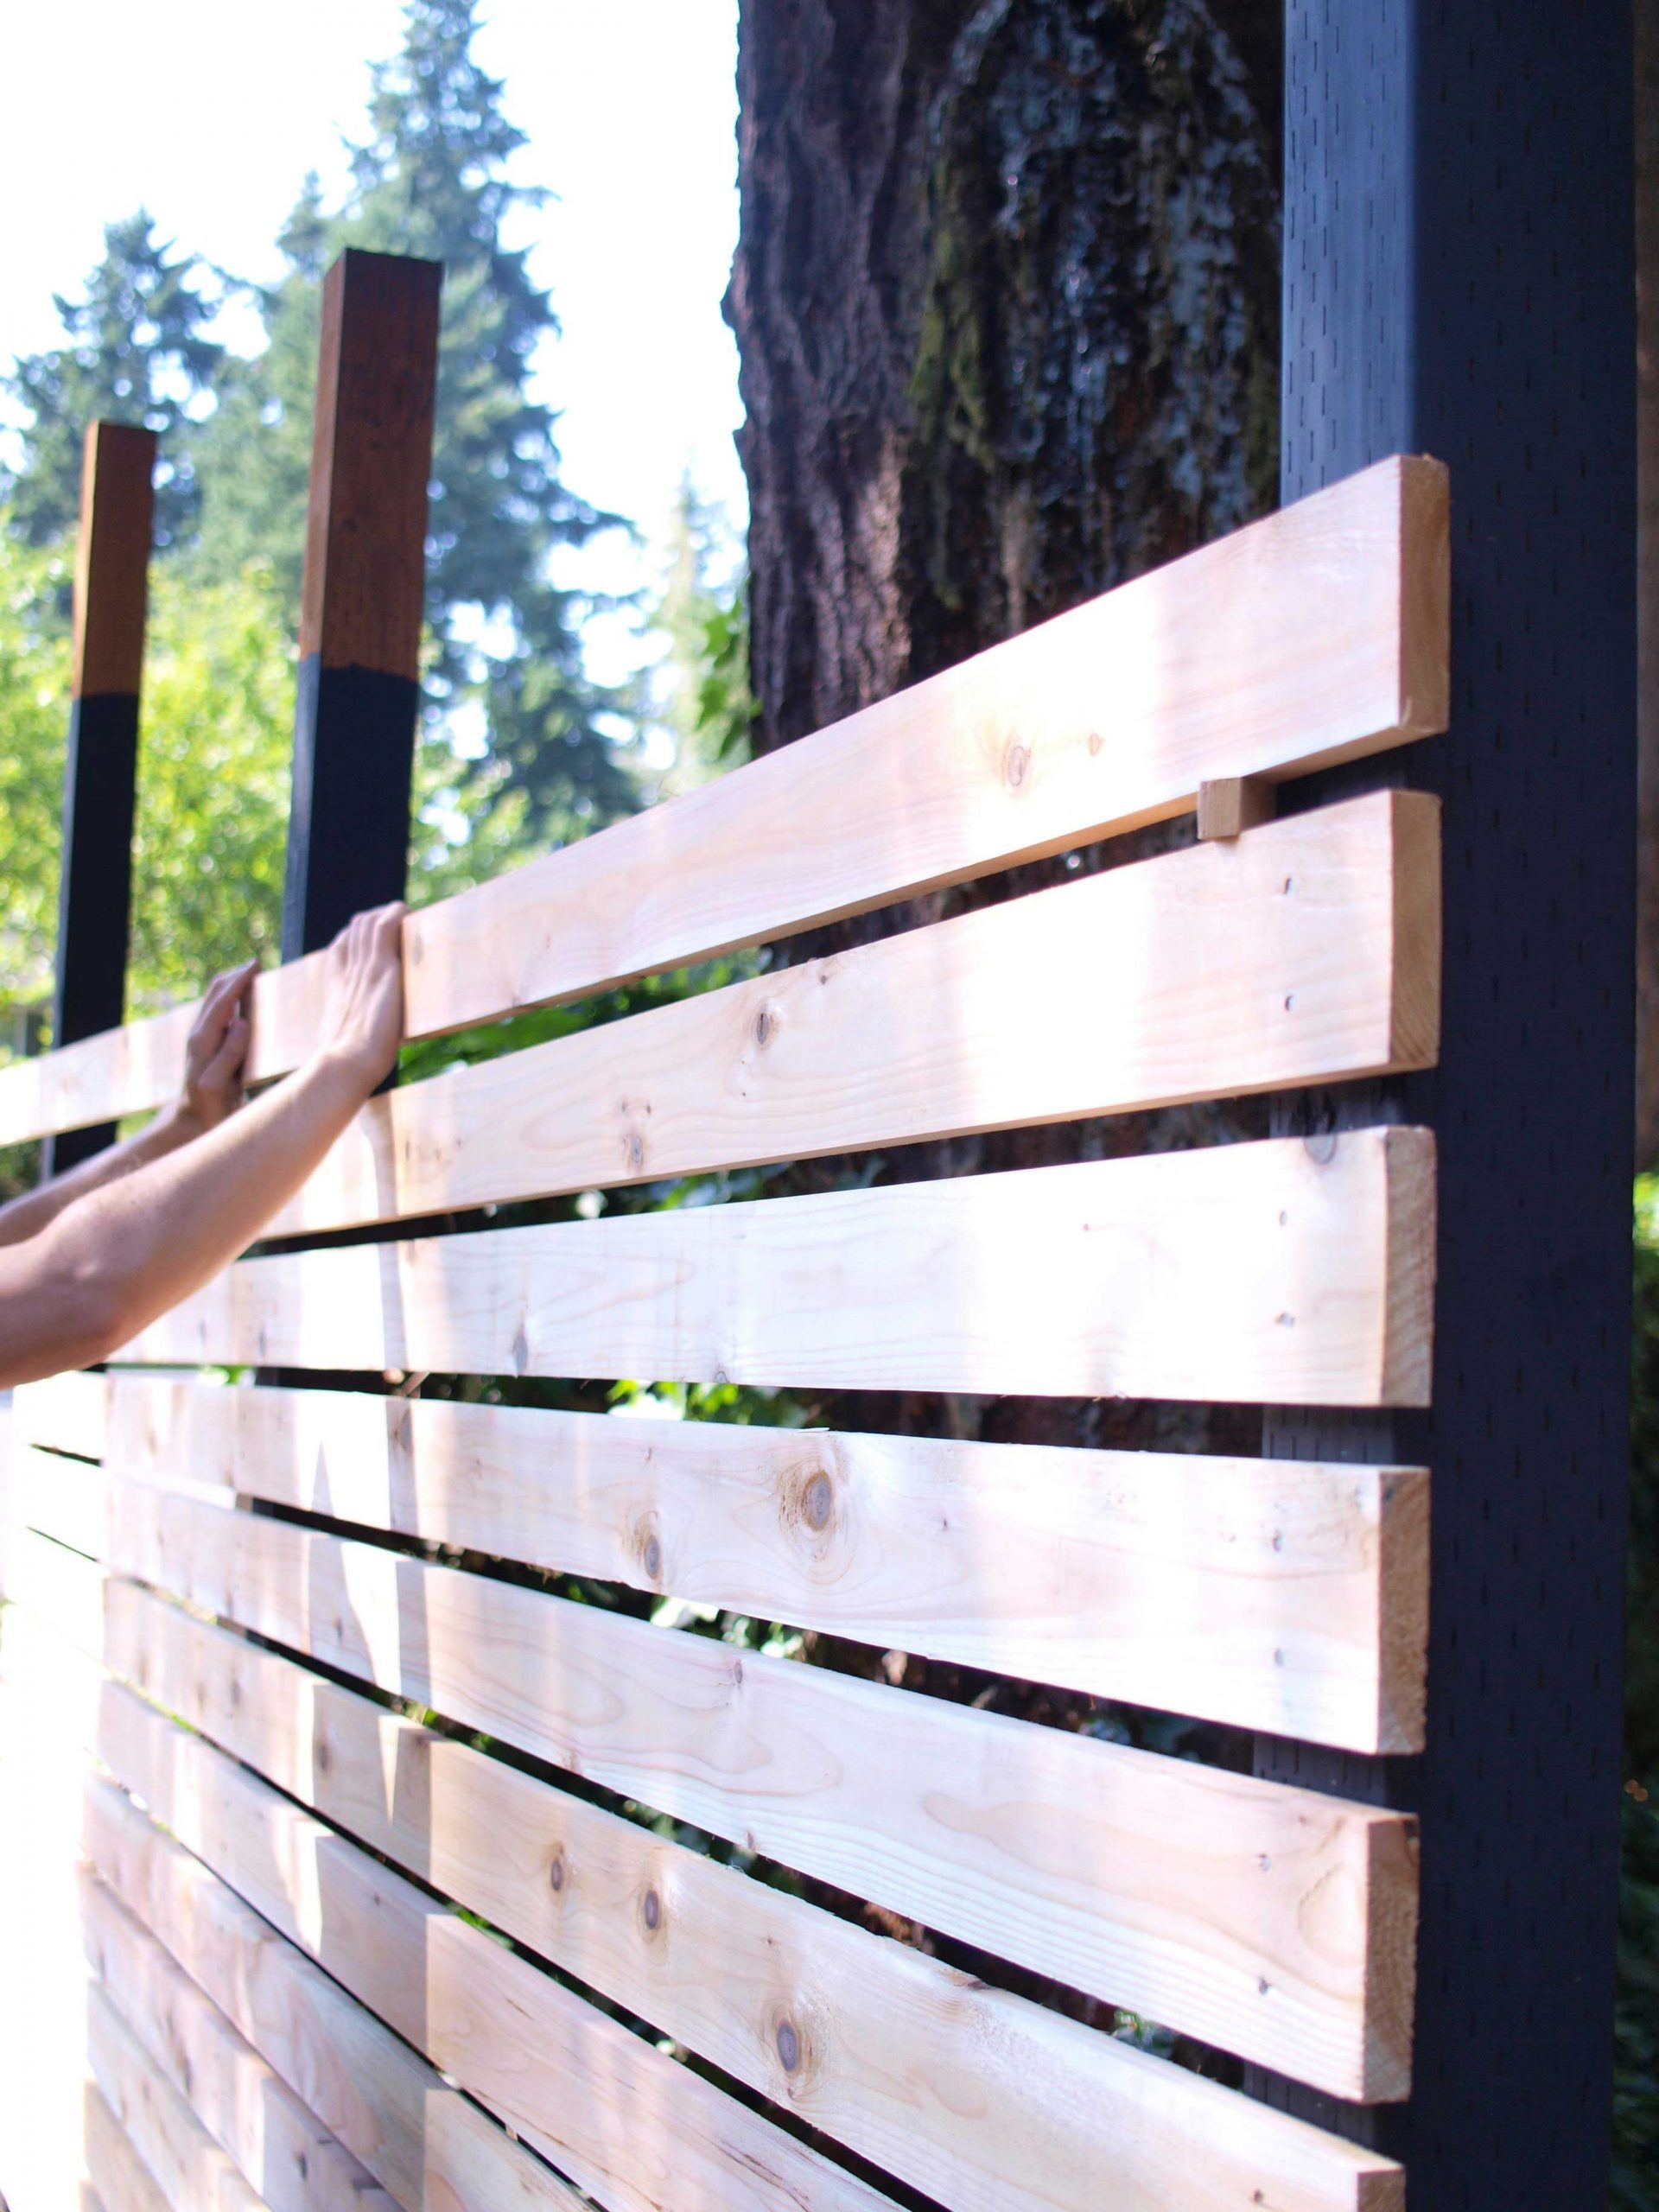 How To Build A Diy Backyard Fence, Part Ii | Cloture Jardin ... pour Separation De Jardin